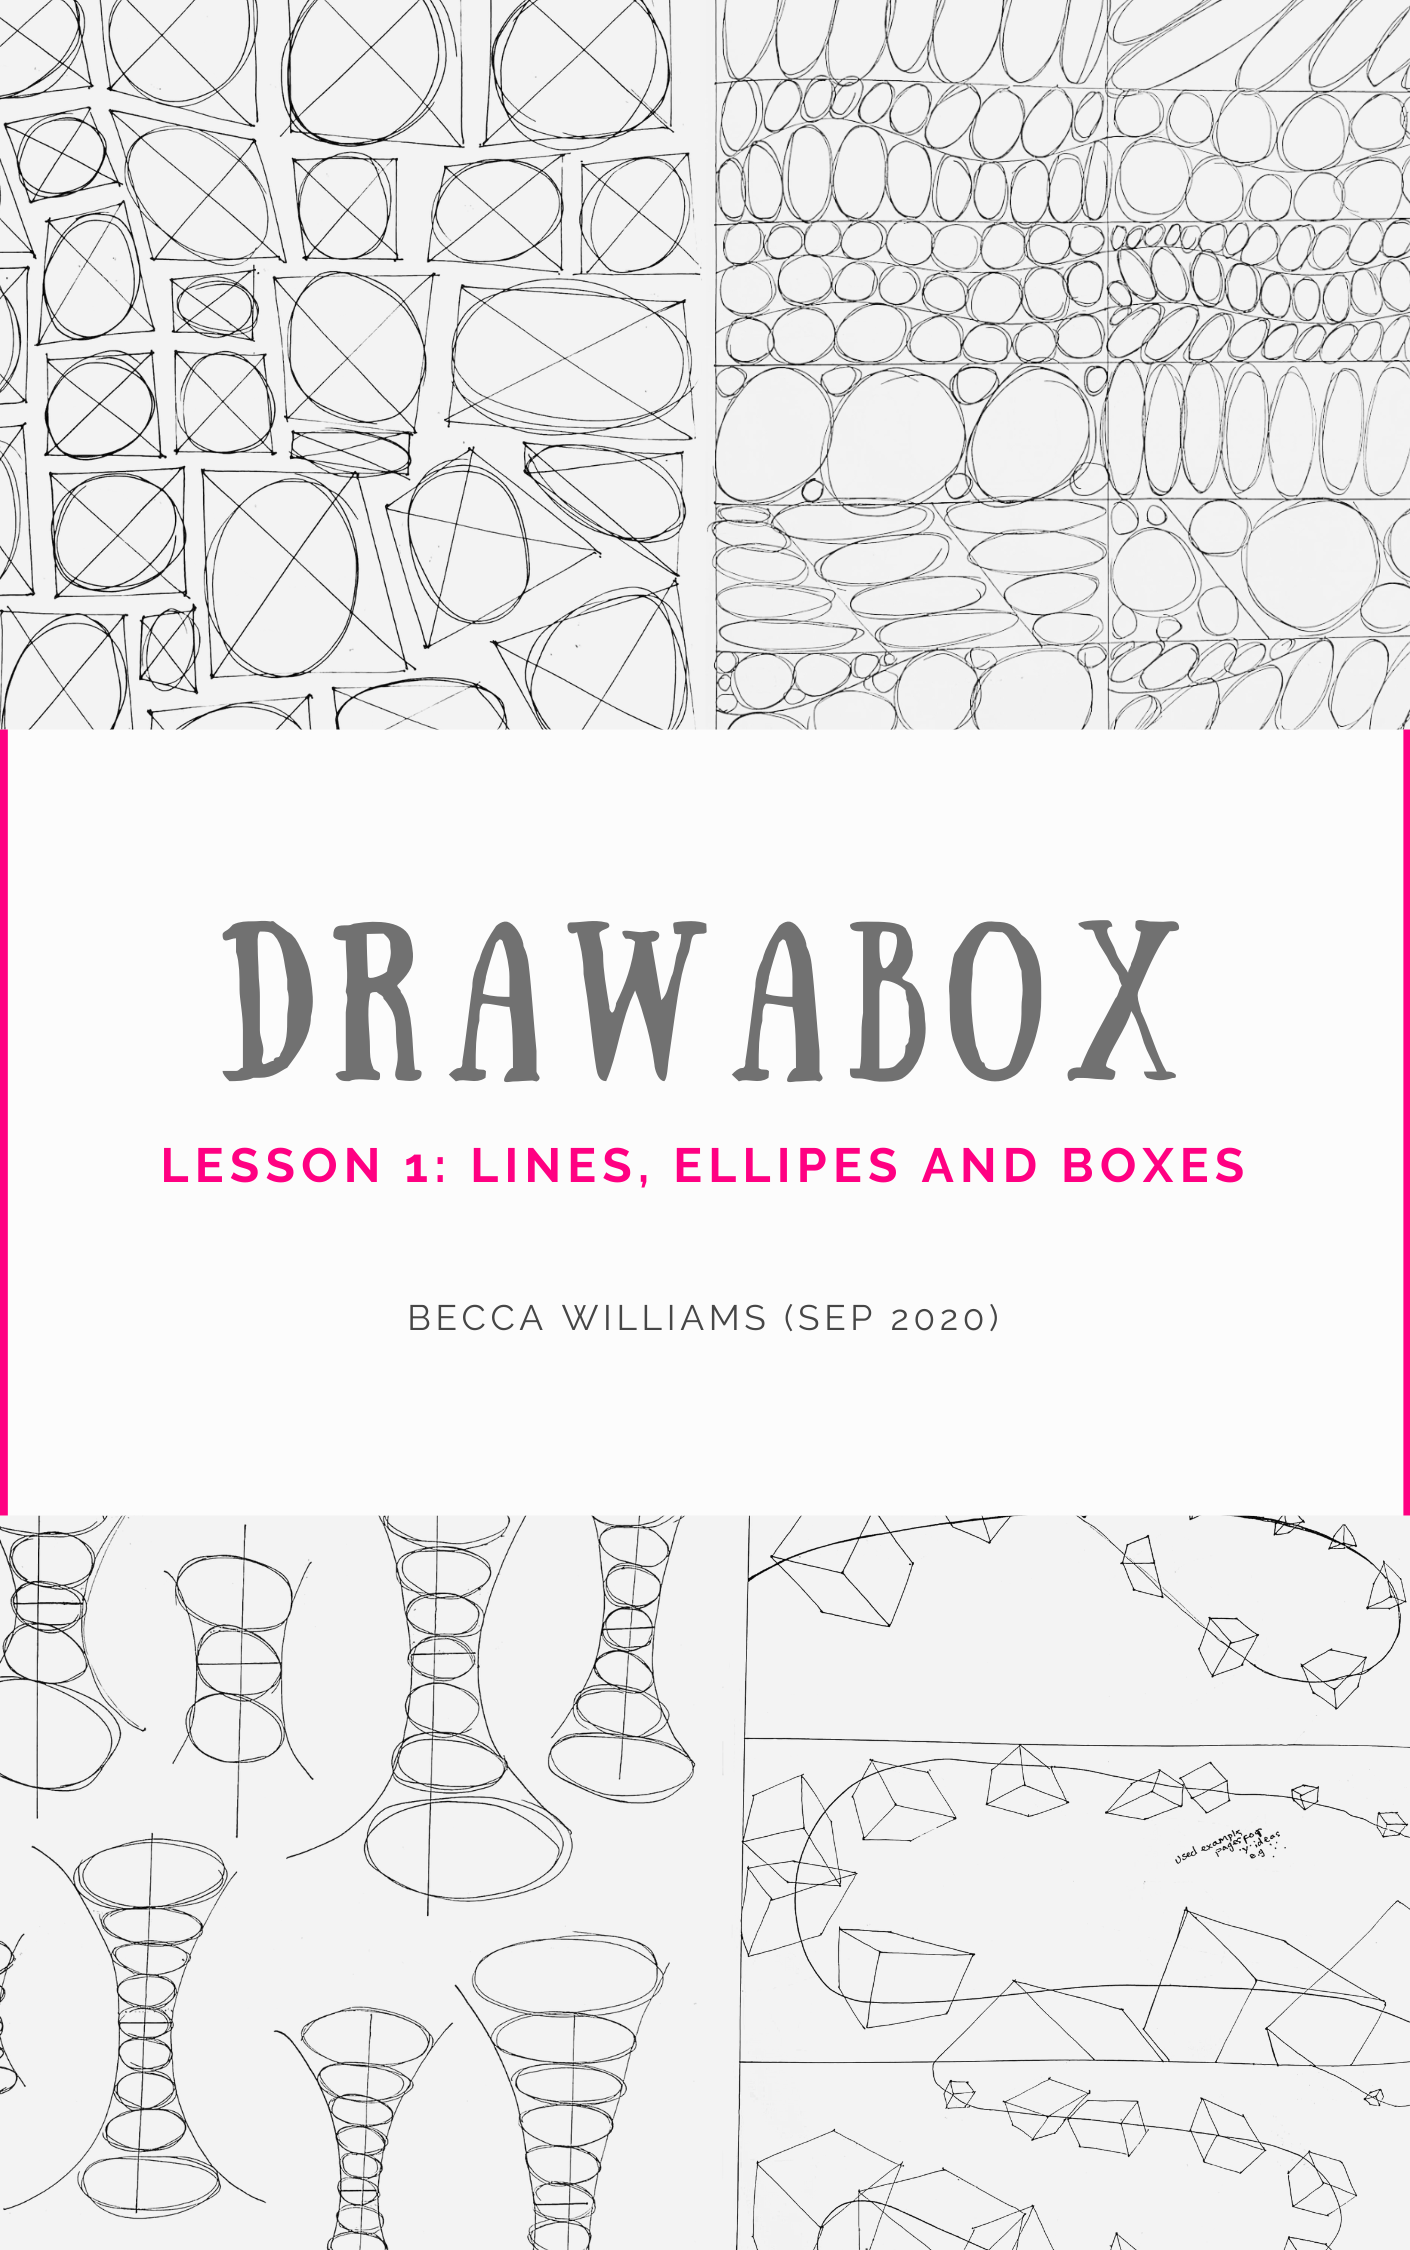 Drawabox lesson 1 ebook cover